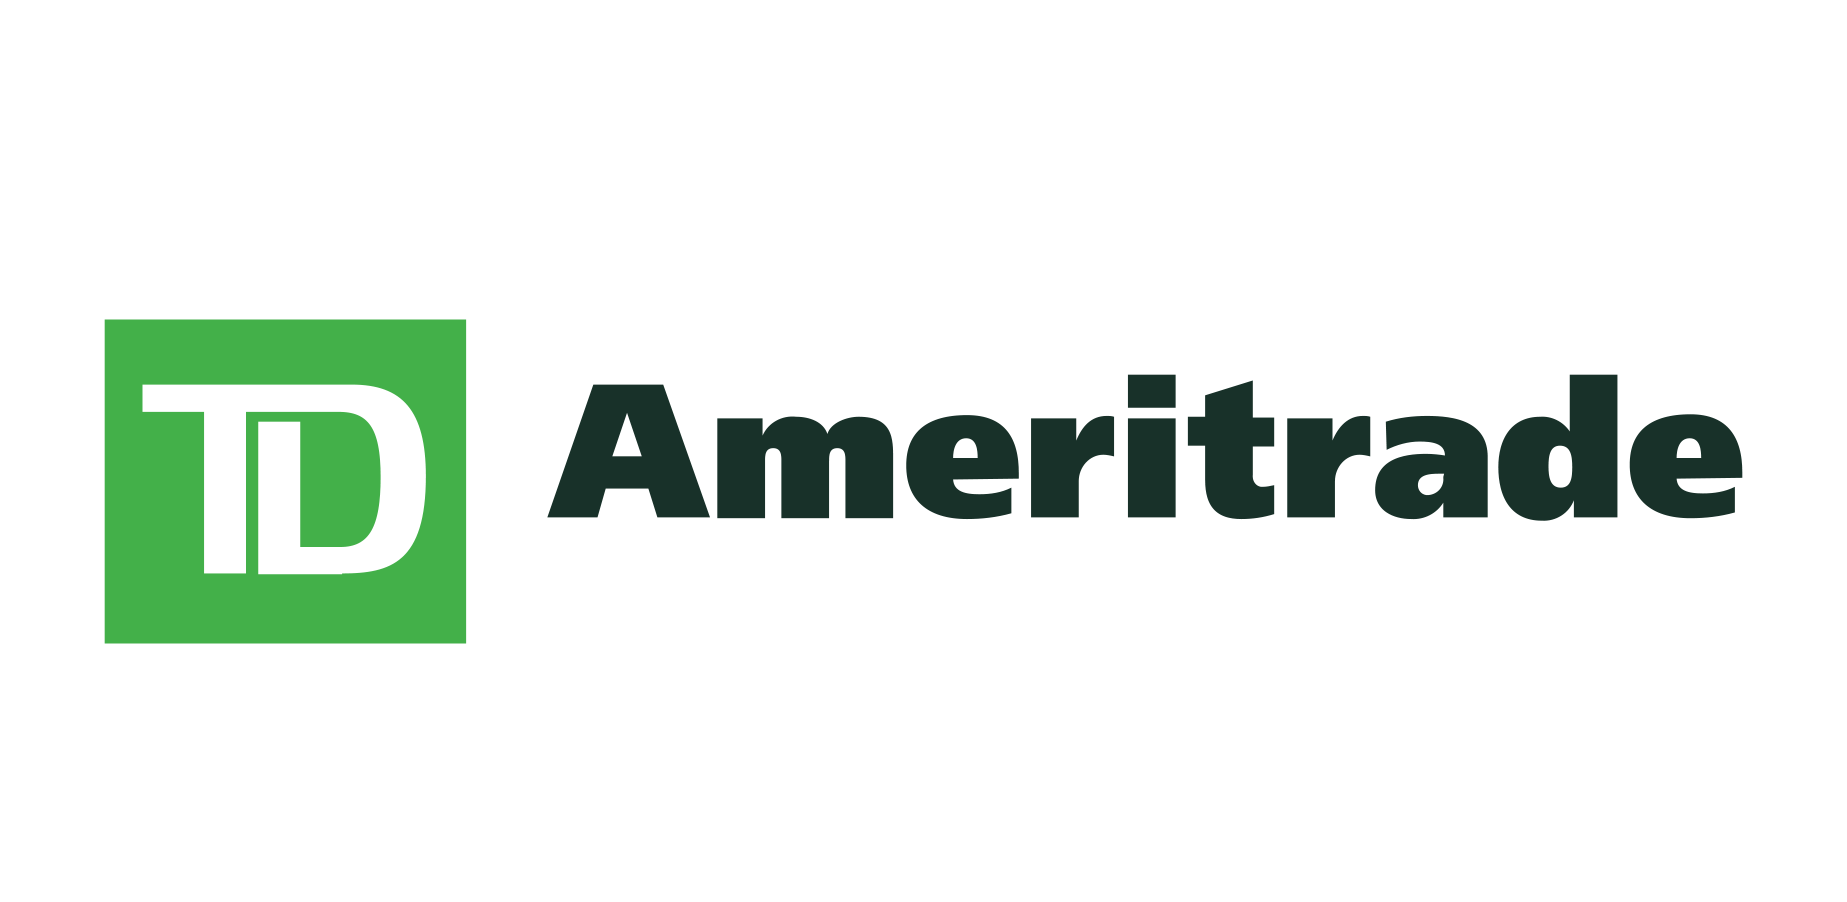 TD Ameritrade Middleton, MA Tapparo Capital Management